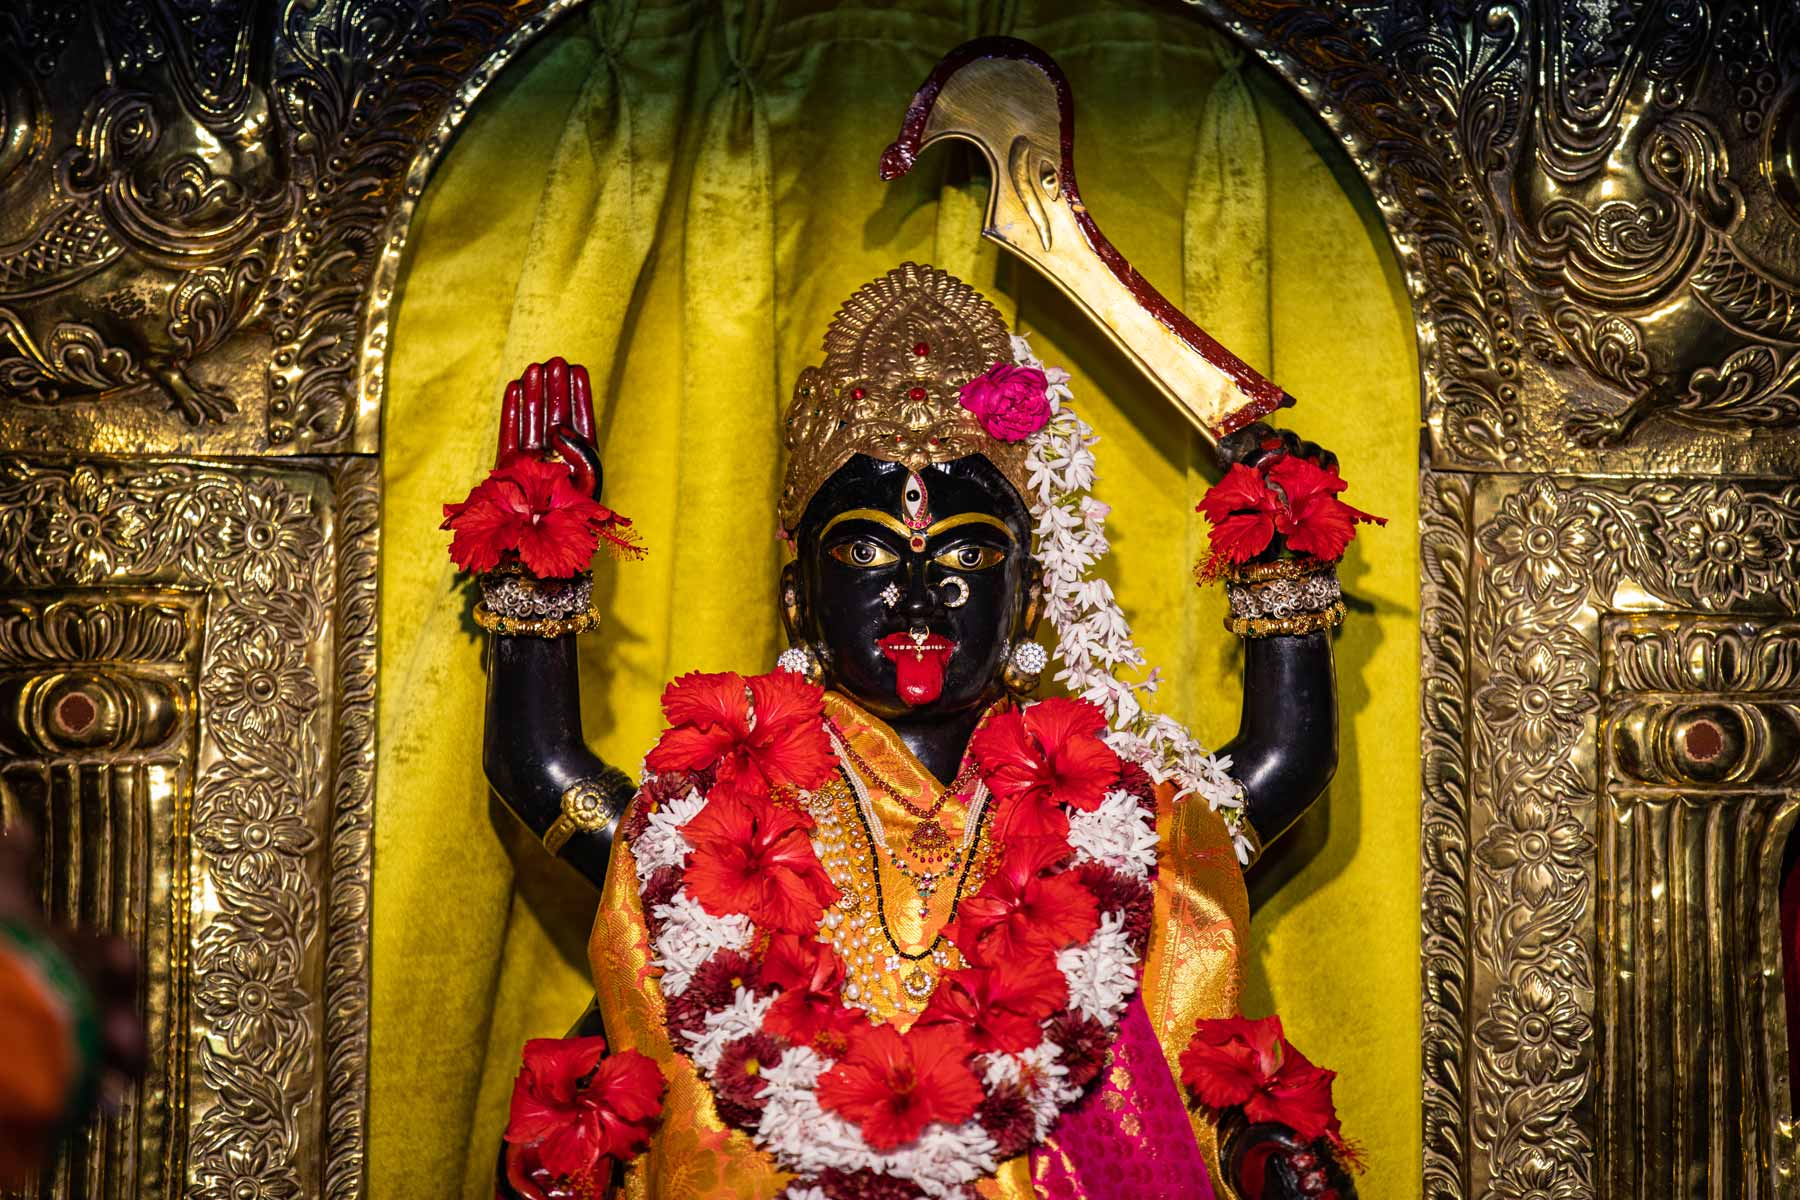 temples-of-east-india-mother-kali